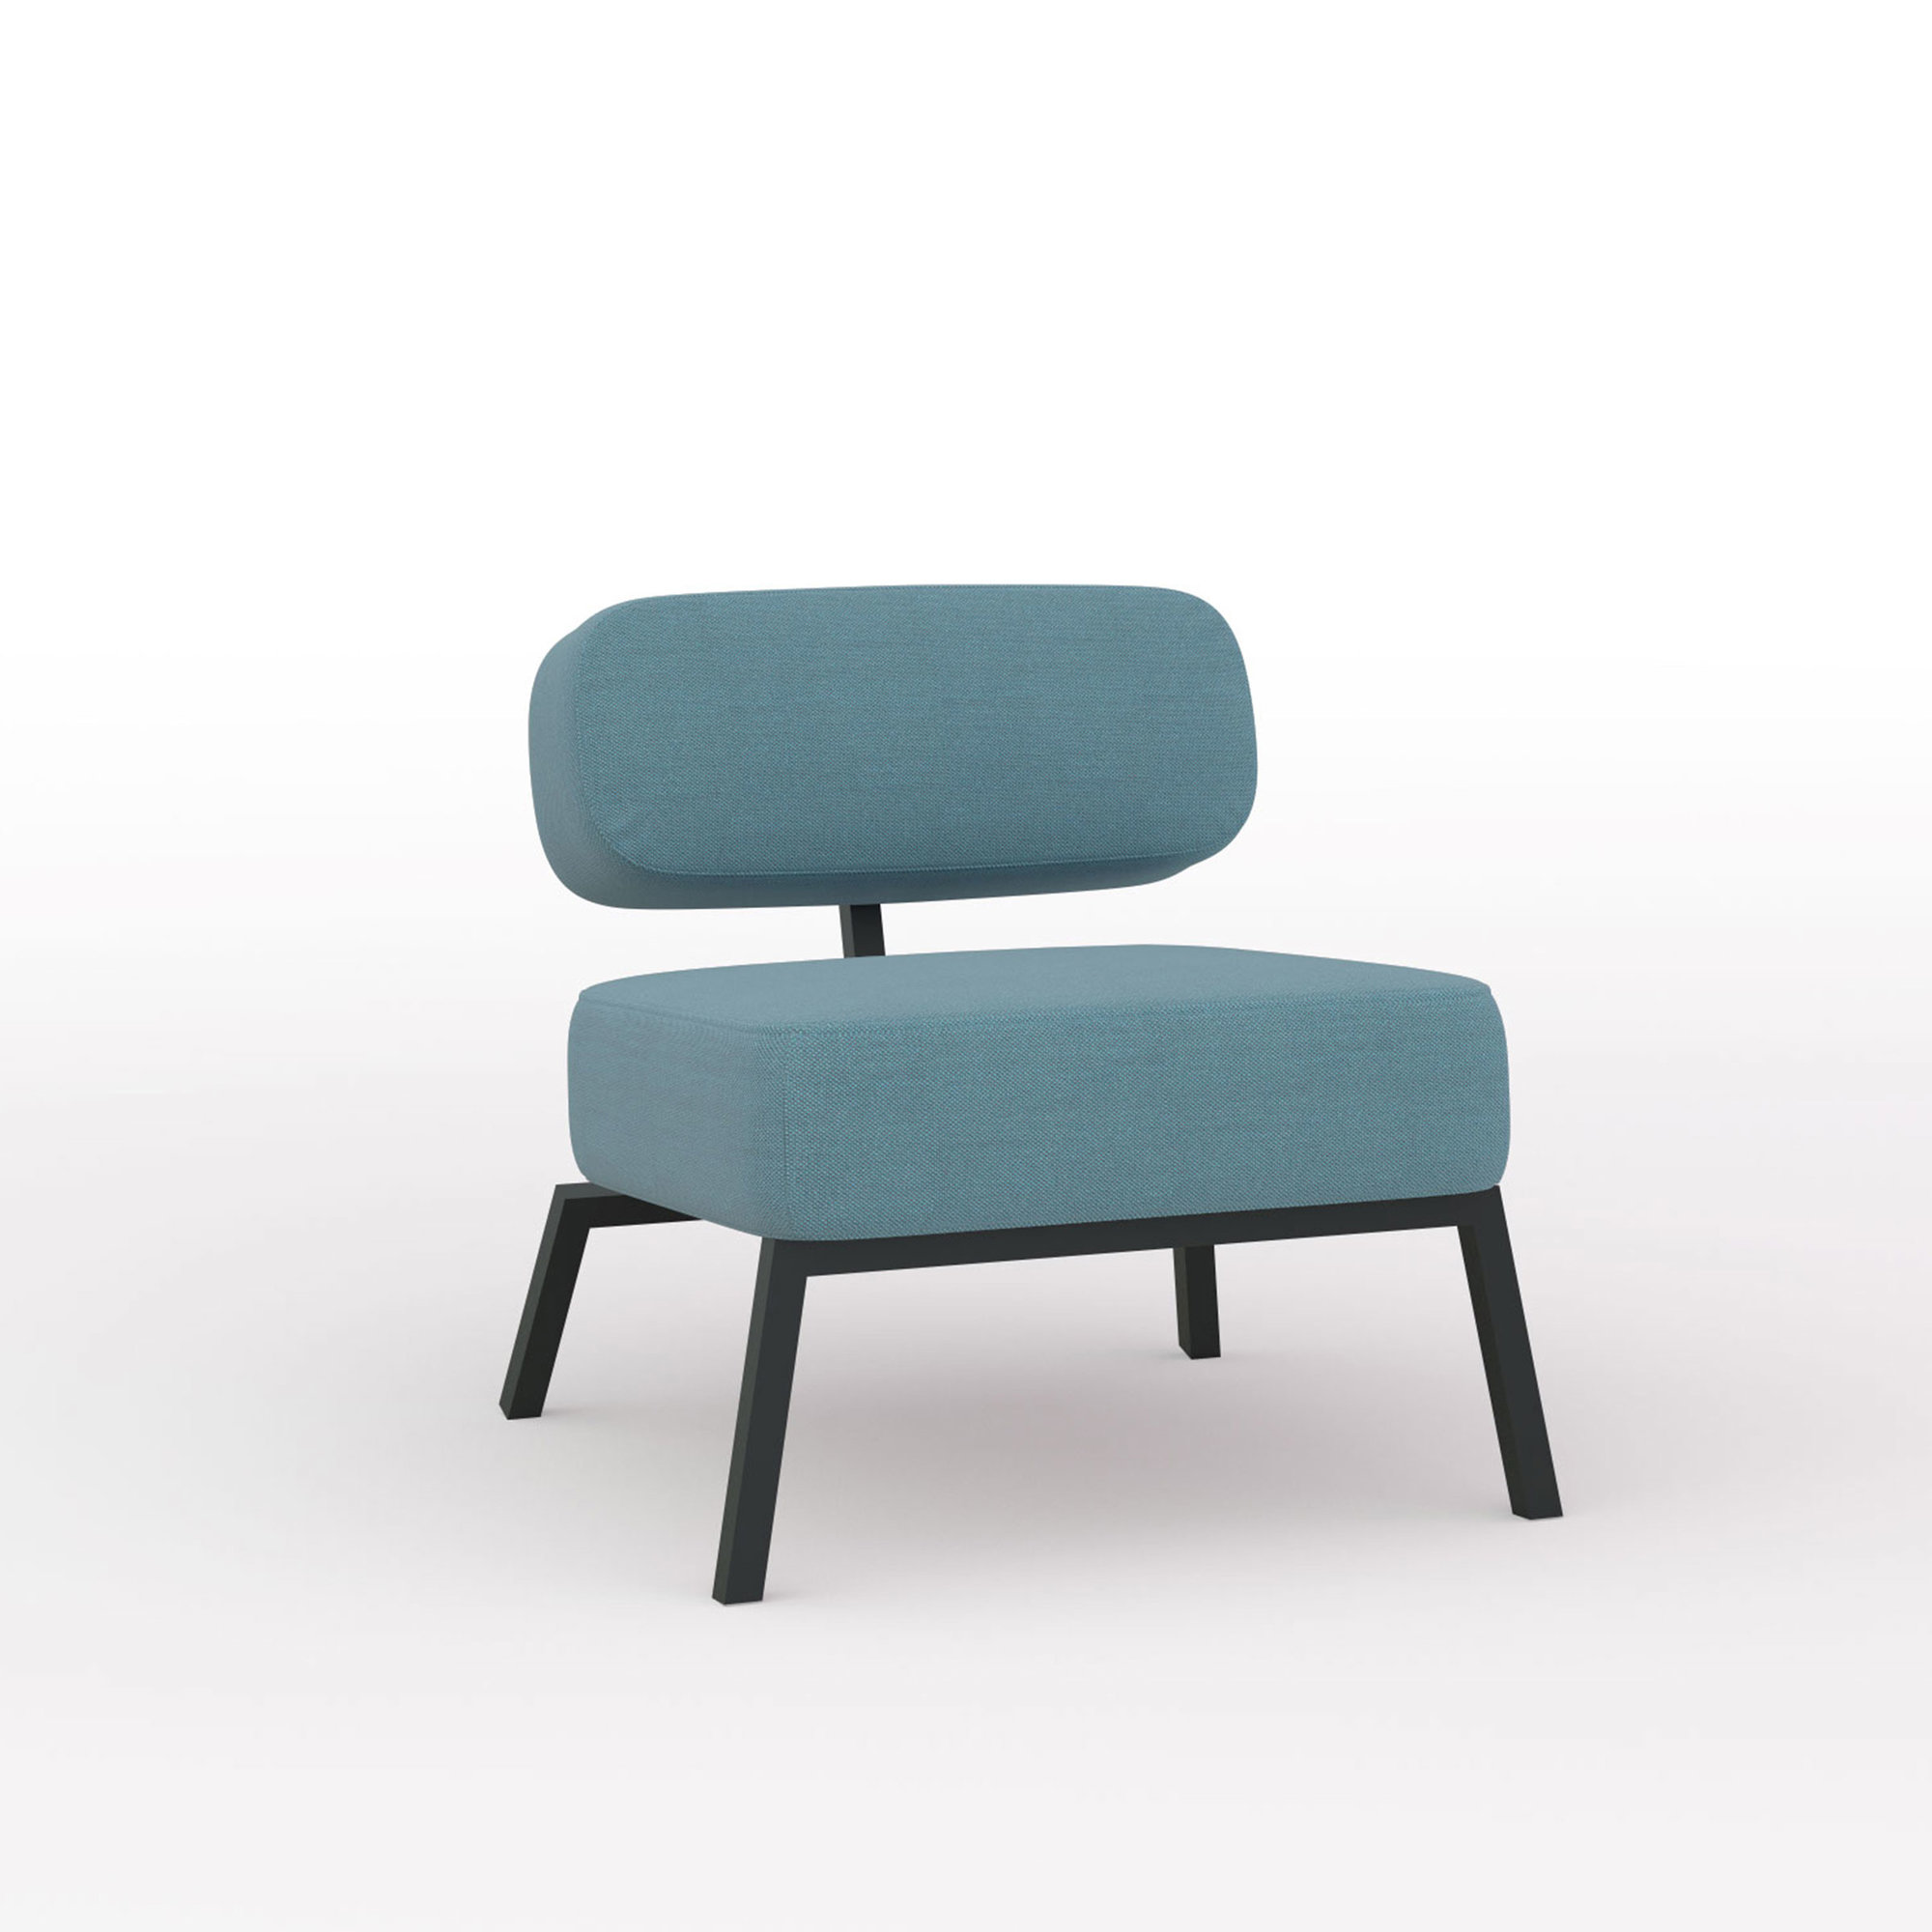 Design zitbank | Ode lounge chair 1 seater without armrest  steelcuttrio3 996 | Studio HENK | Listing_image